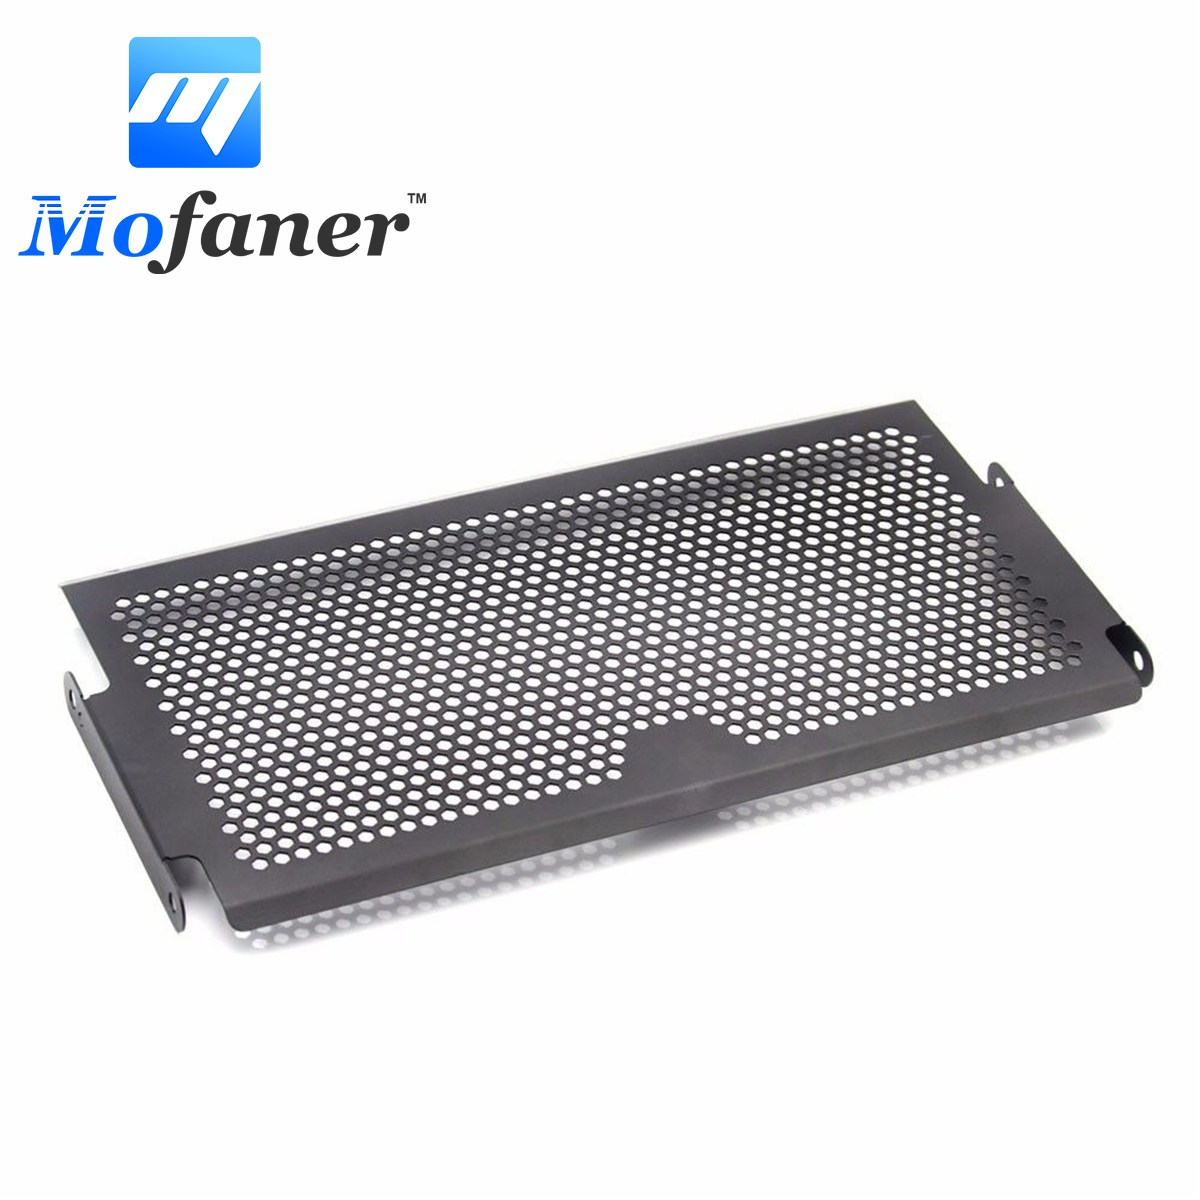 Motorcycle Radiator Grille Guard Cover For Yamaha MT07 FZ07 2014 2015 2016 2017 for yamaha mt 07 mt 07 fz 07 fz 07 radiator grille guard cover protector for yamaha mt07 fz07 2014 2015 2016 2017